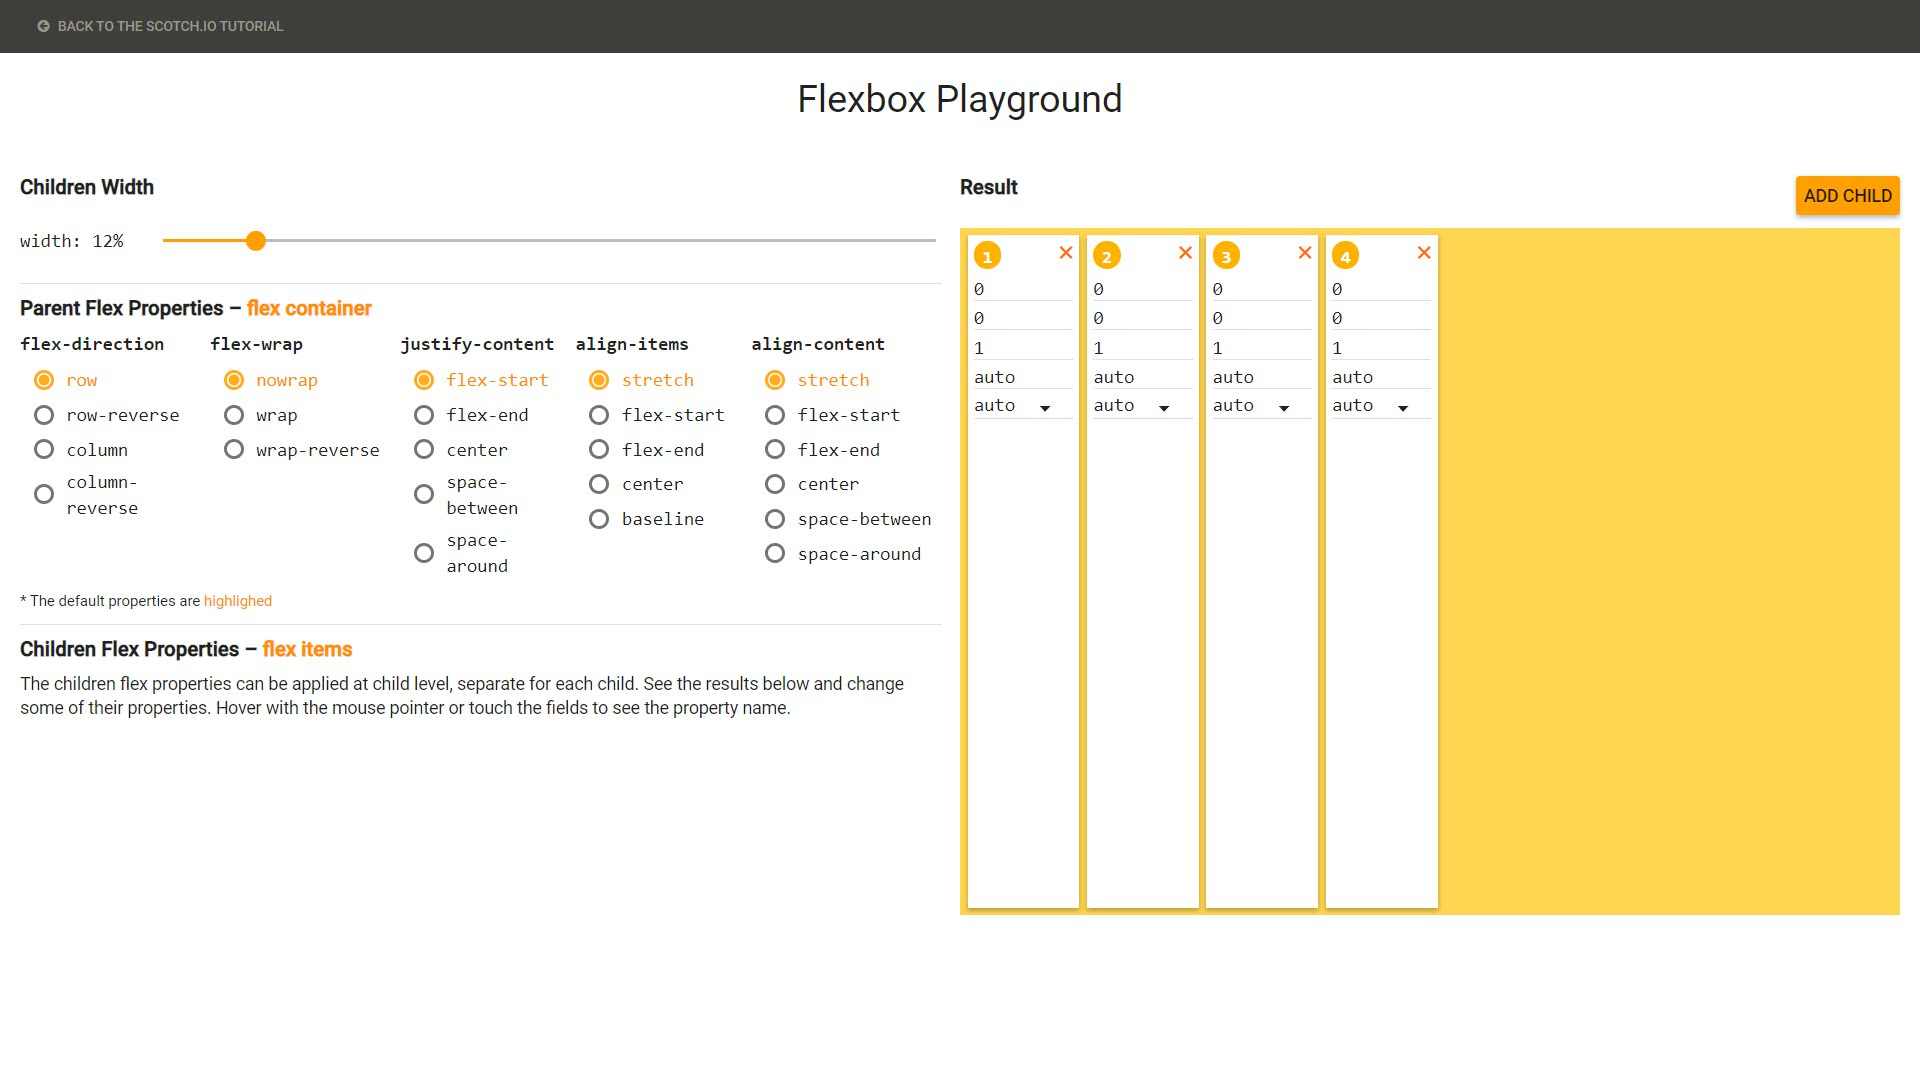 Flexbox Playground